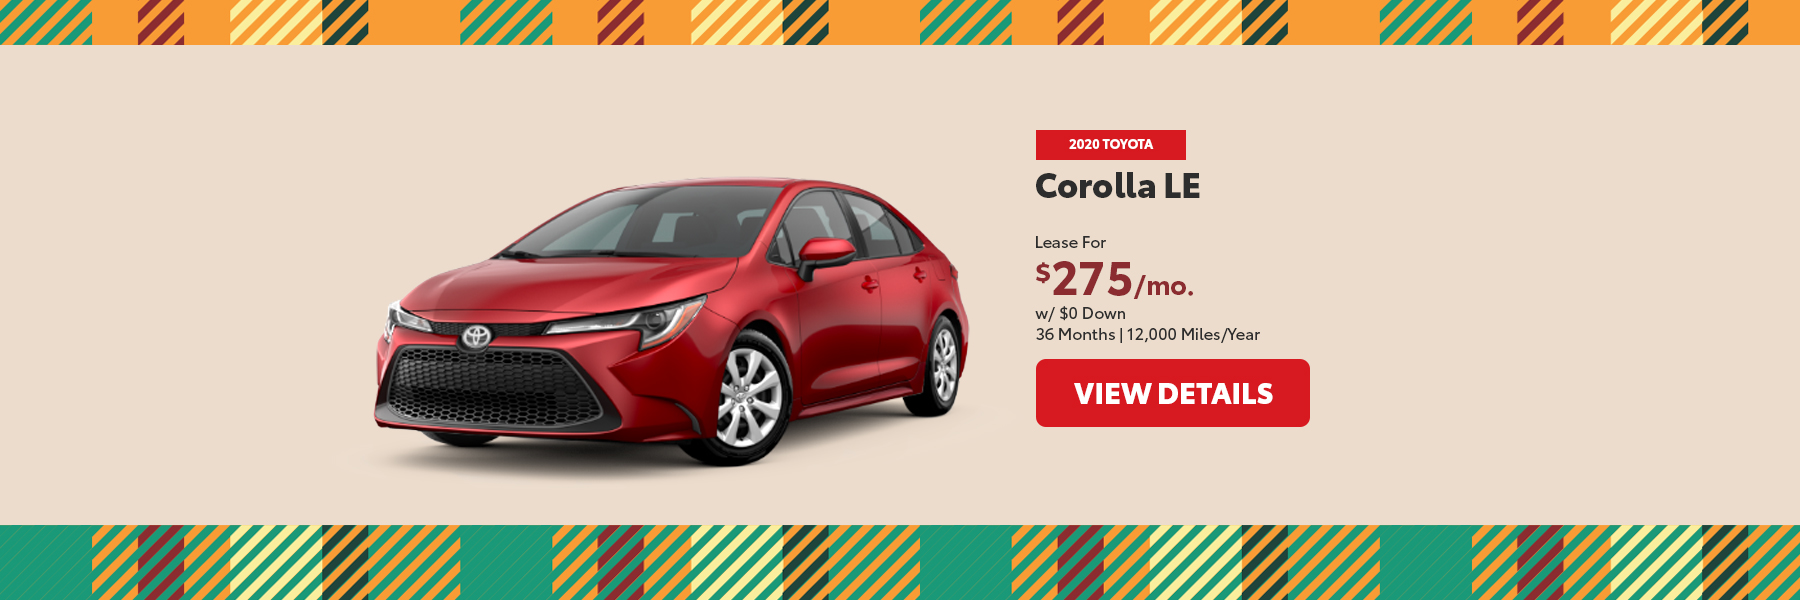 2020 Corolla Special Offer